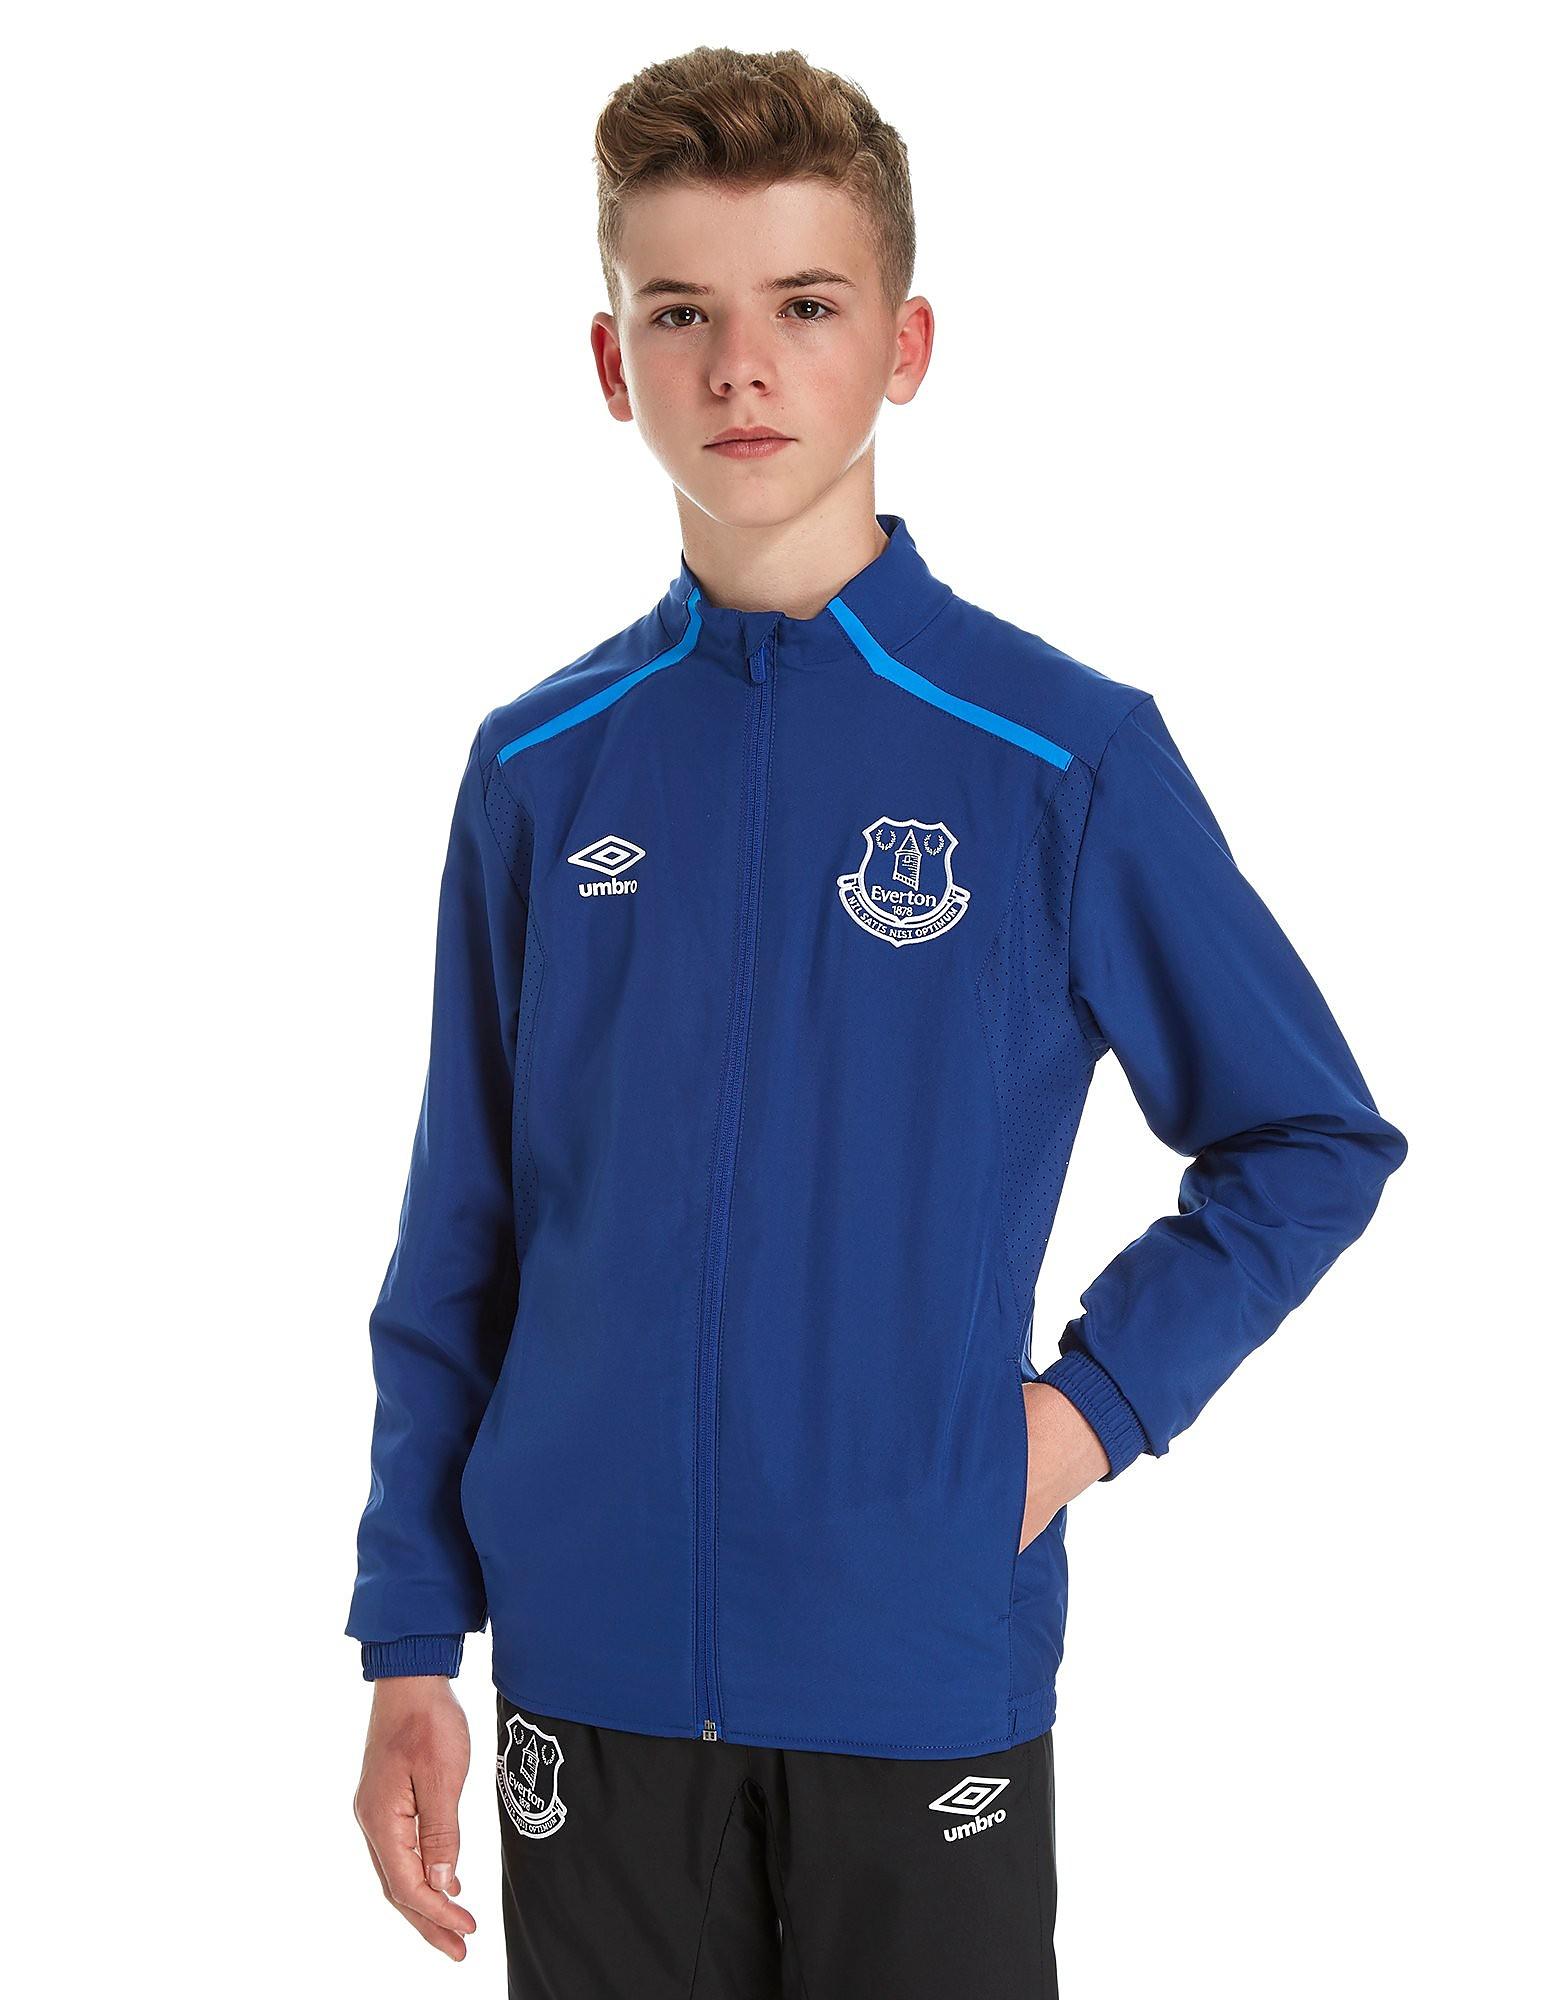 Umbro Everton FC Training Top Junior